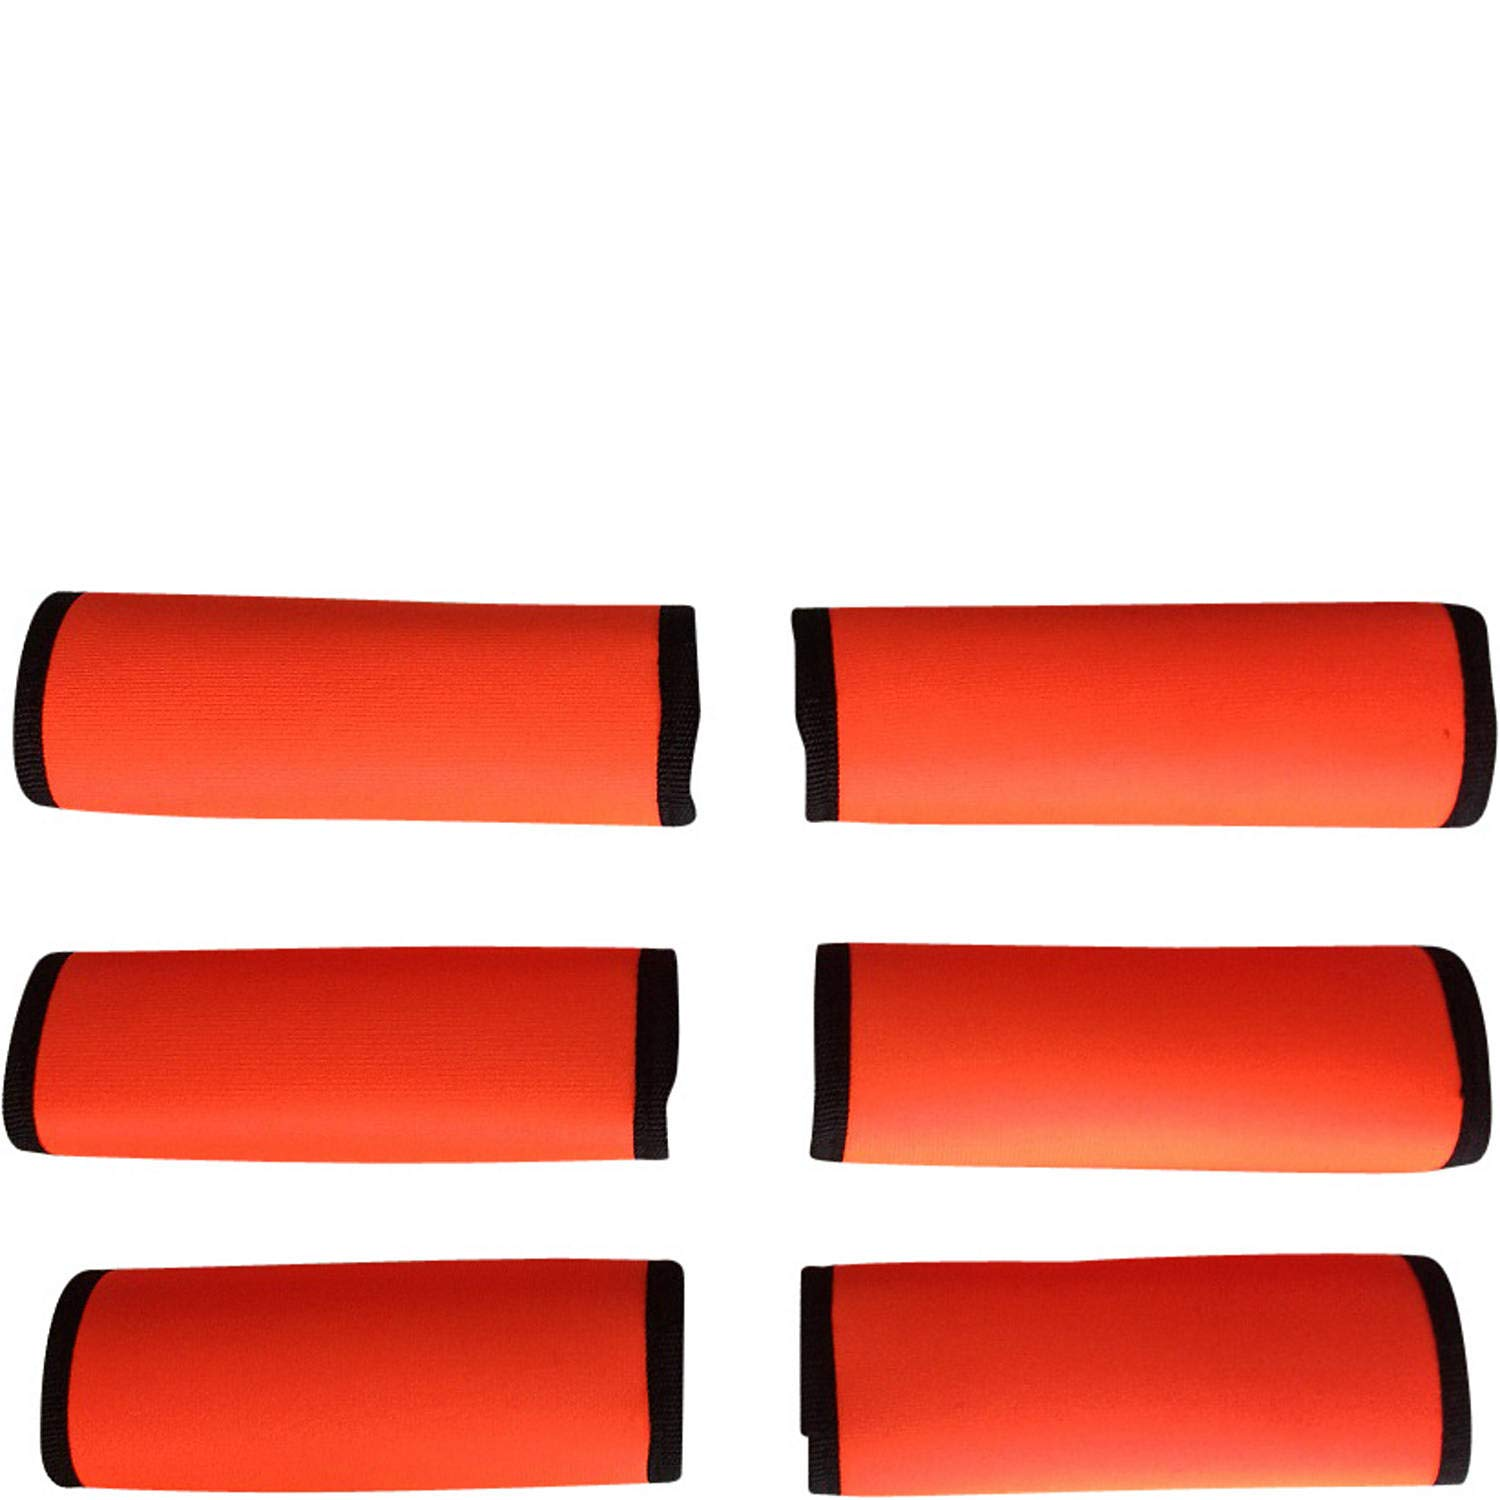 LUGGAGE SPOTTER® SUPER GRABBER - 6 PCS ORANGE Soft Comfort Neoprene Handle Wraps Grip Luggage Identifier for Travel Bags Suitcases Heavy Grocery Bags and More! by Luggage Spotter